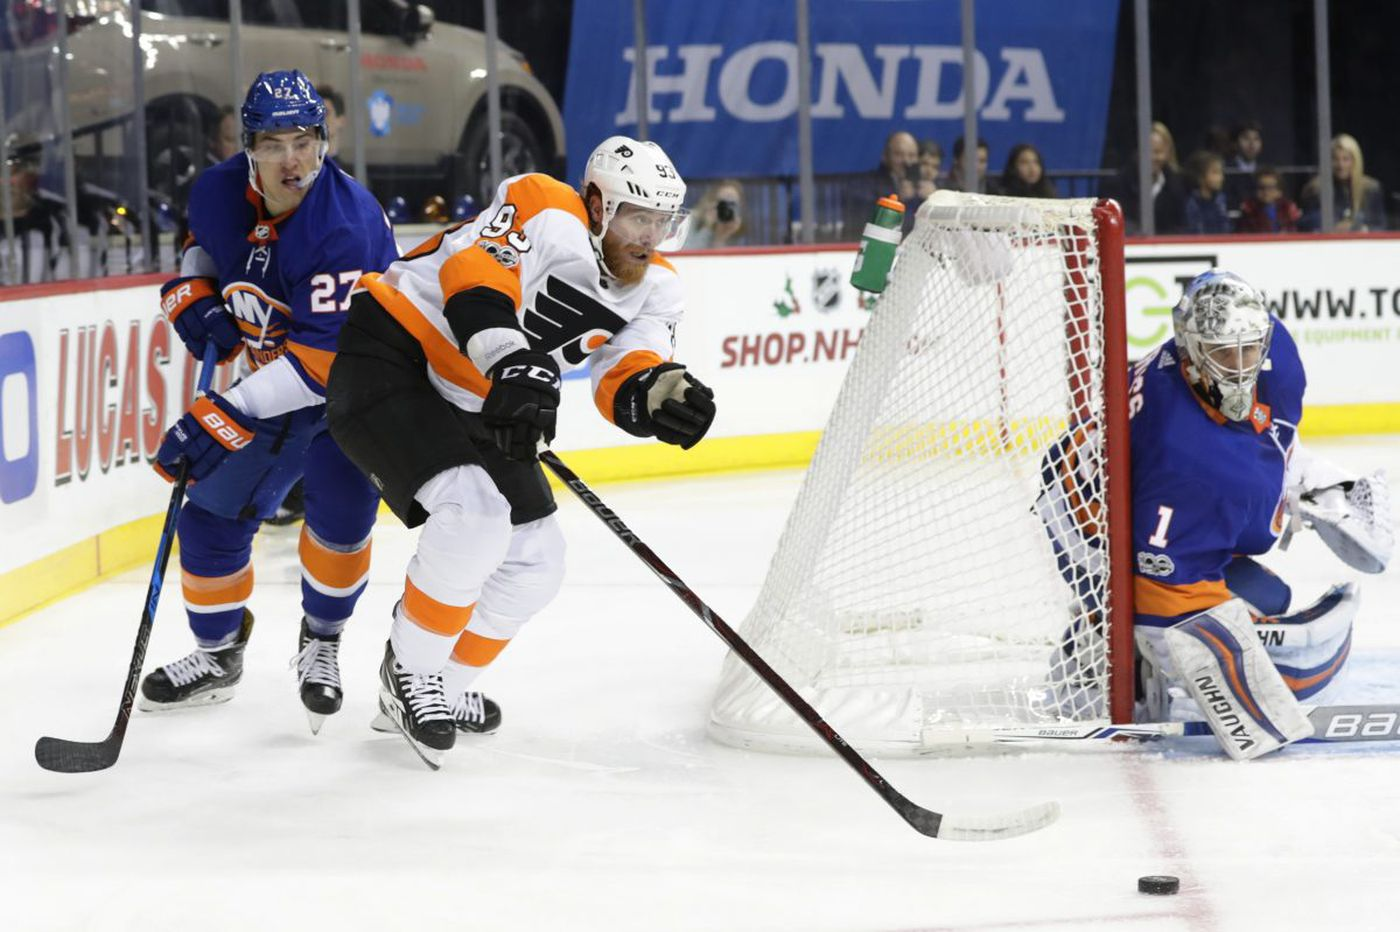 Flyers need to refocus if they're going to get by the Islanders